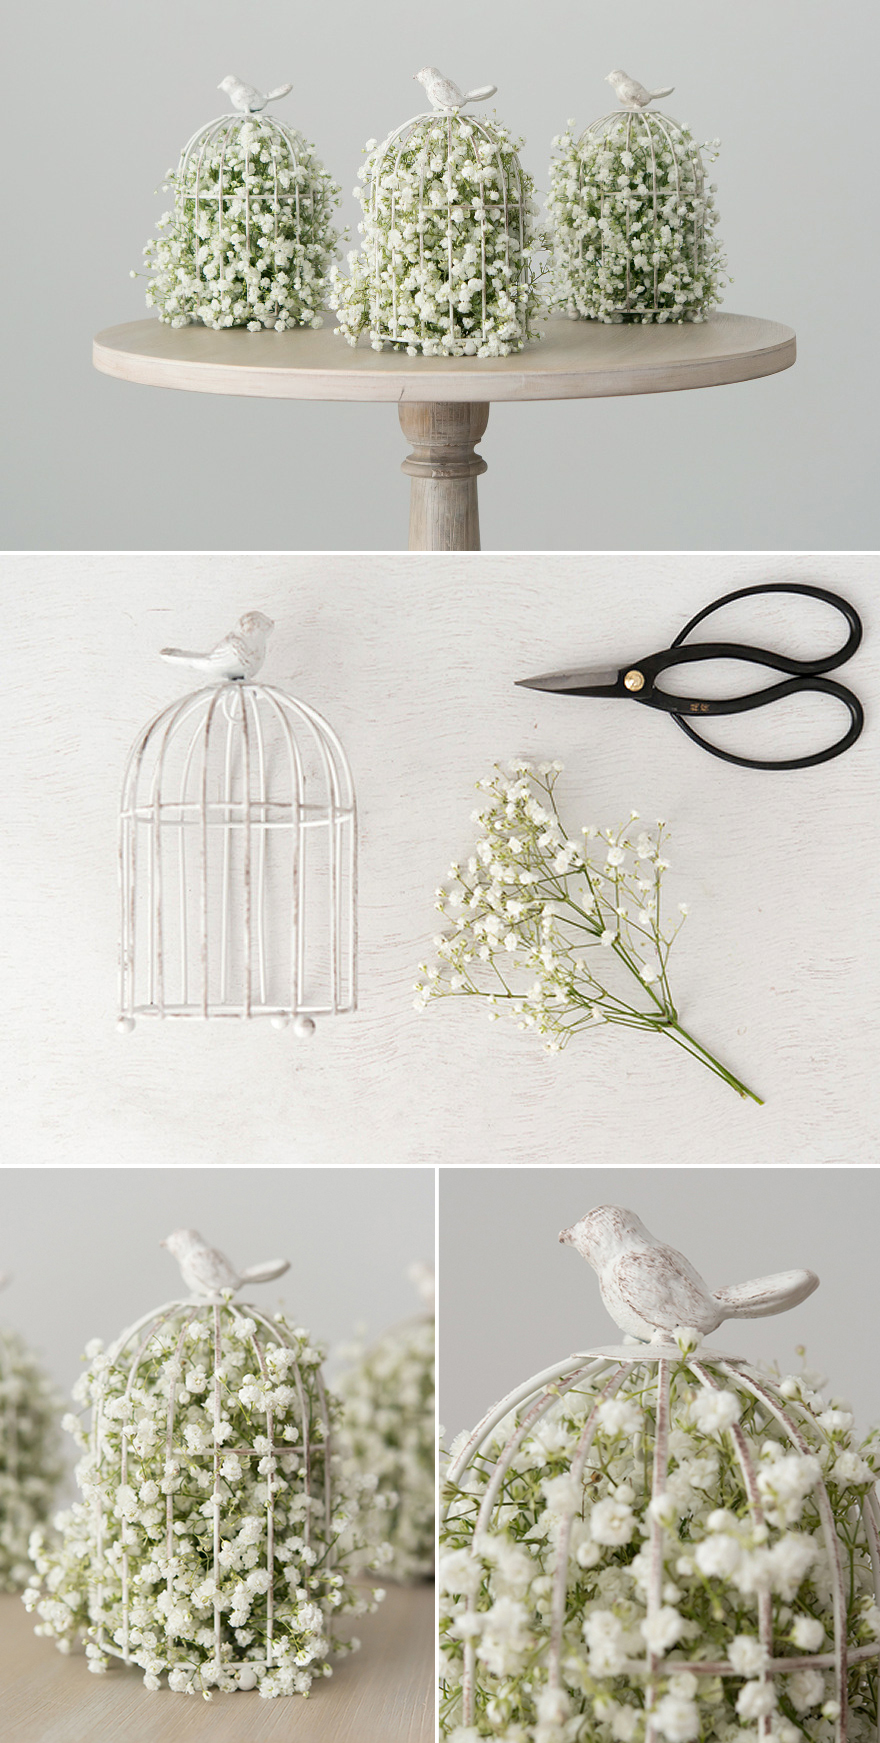 DIY Bird Centrepiece with Baby's Breath and Birdcage | Confetti.co.uk